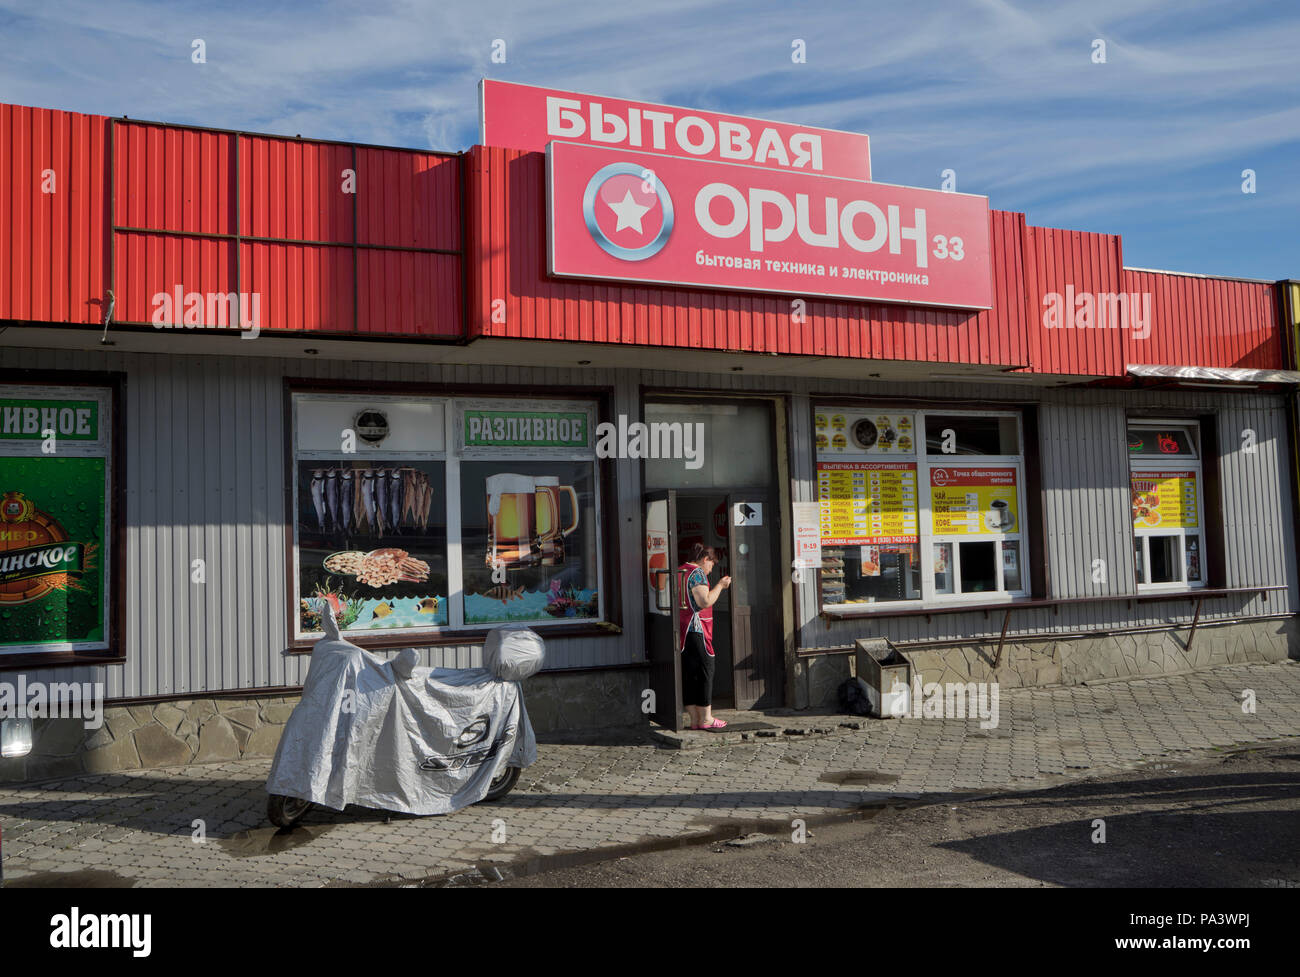 Smalls shops in the town of Vladimir on the Volga river, Russia - Stock Image